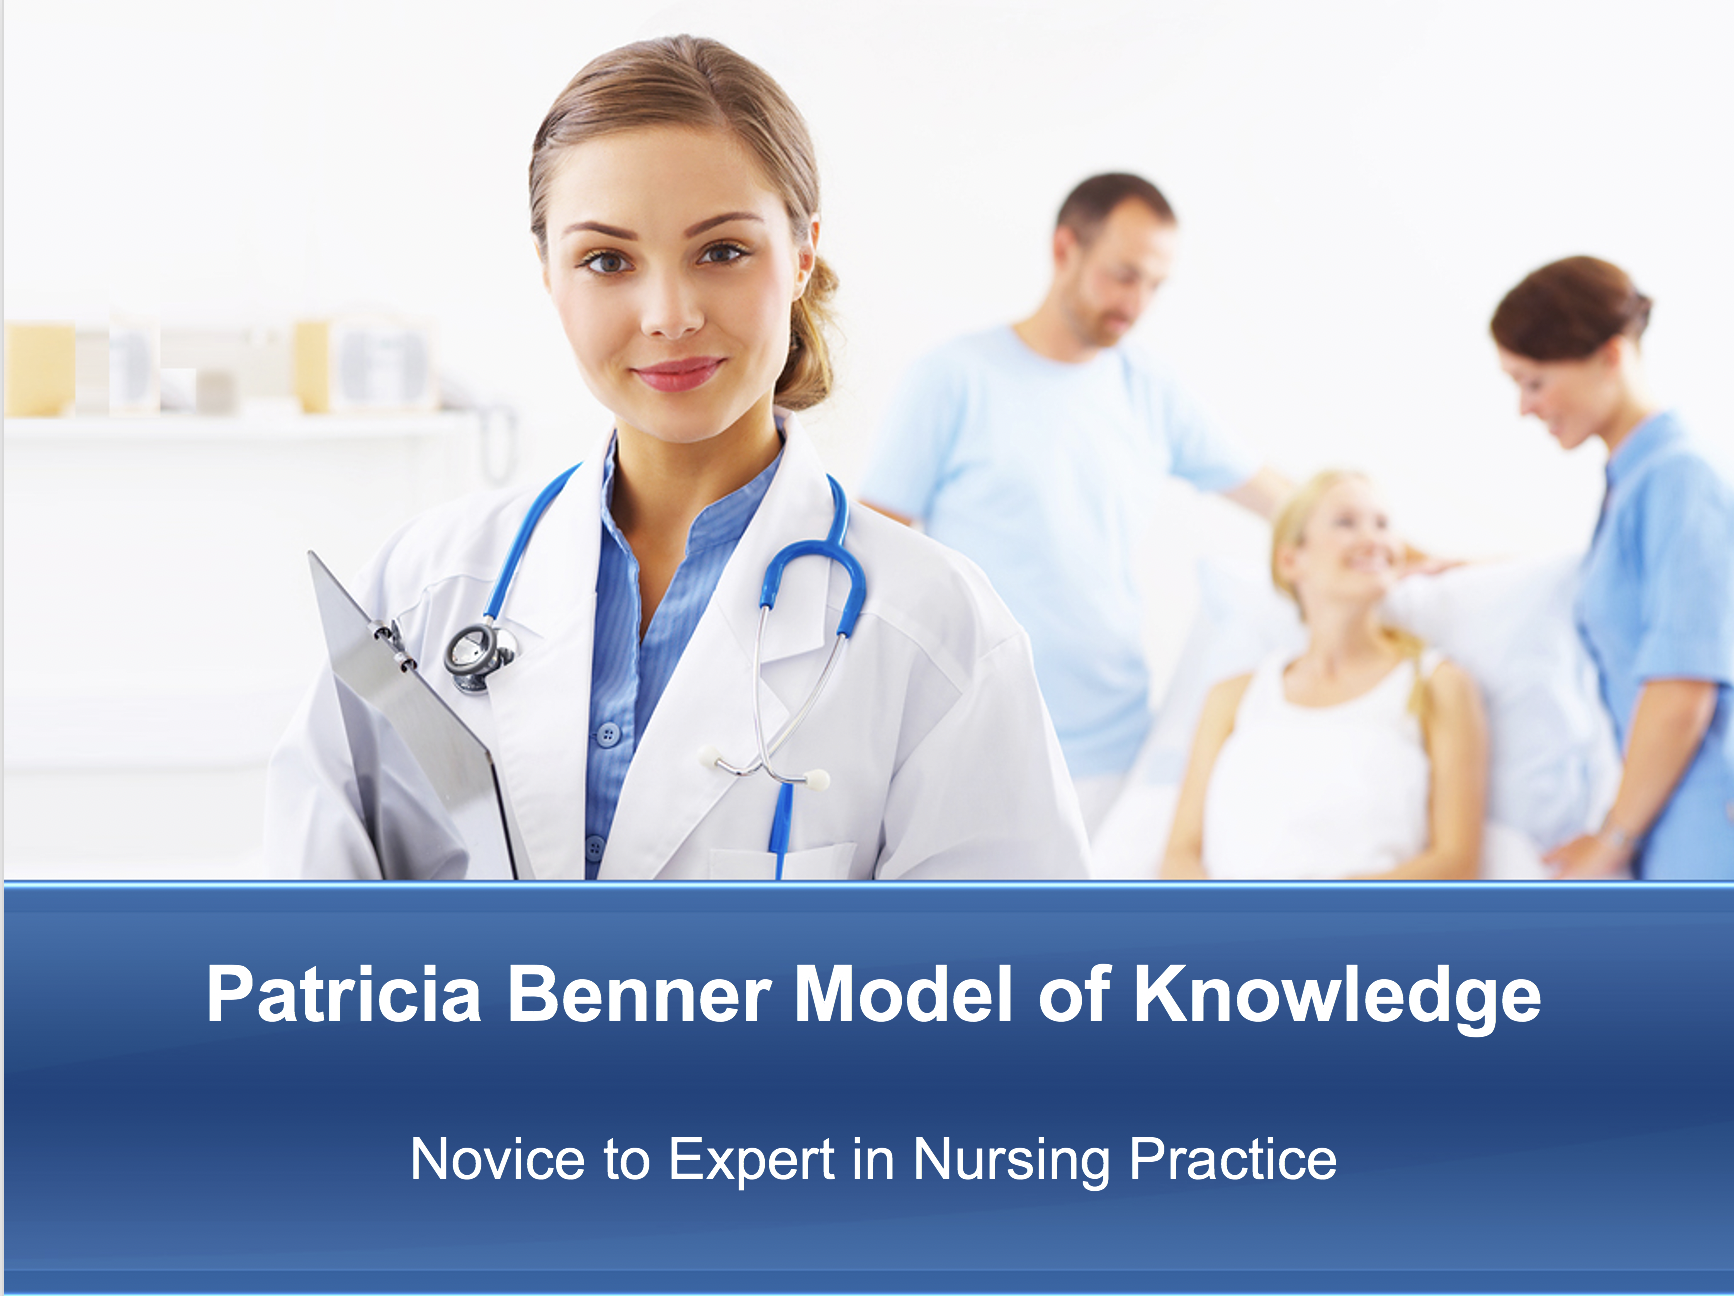 Patricia Benner Model of Knowledge